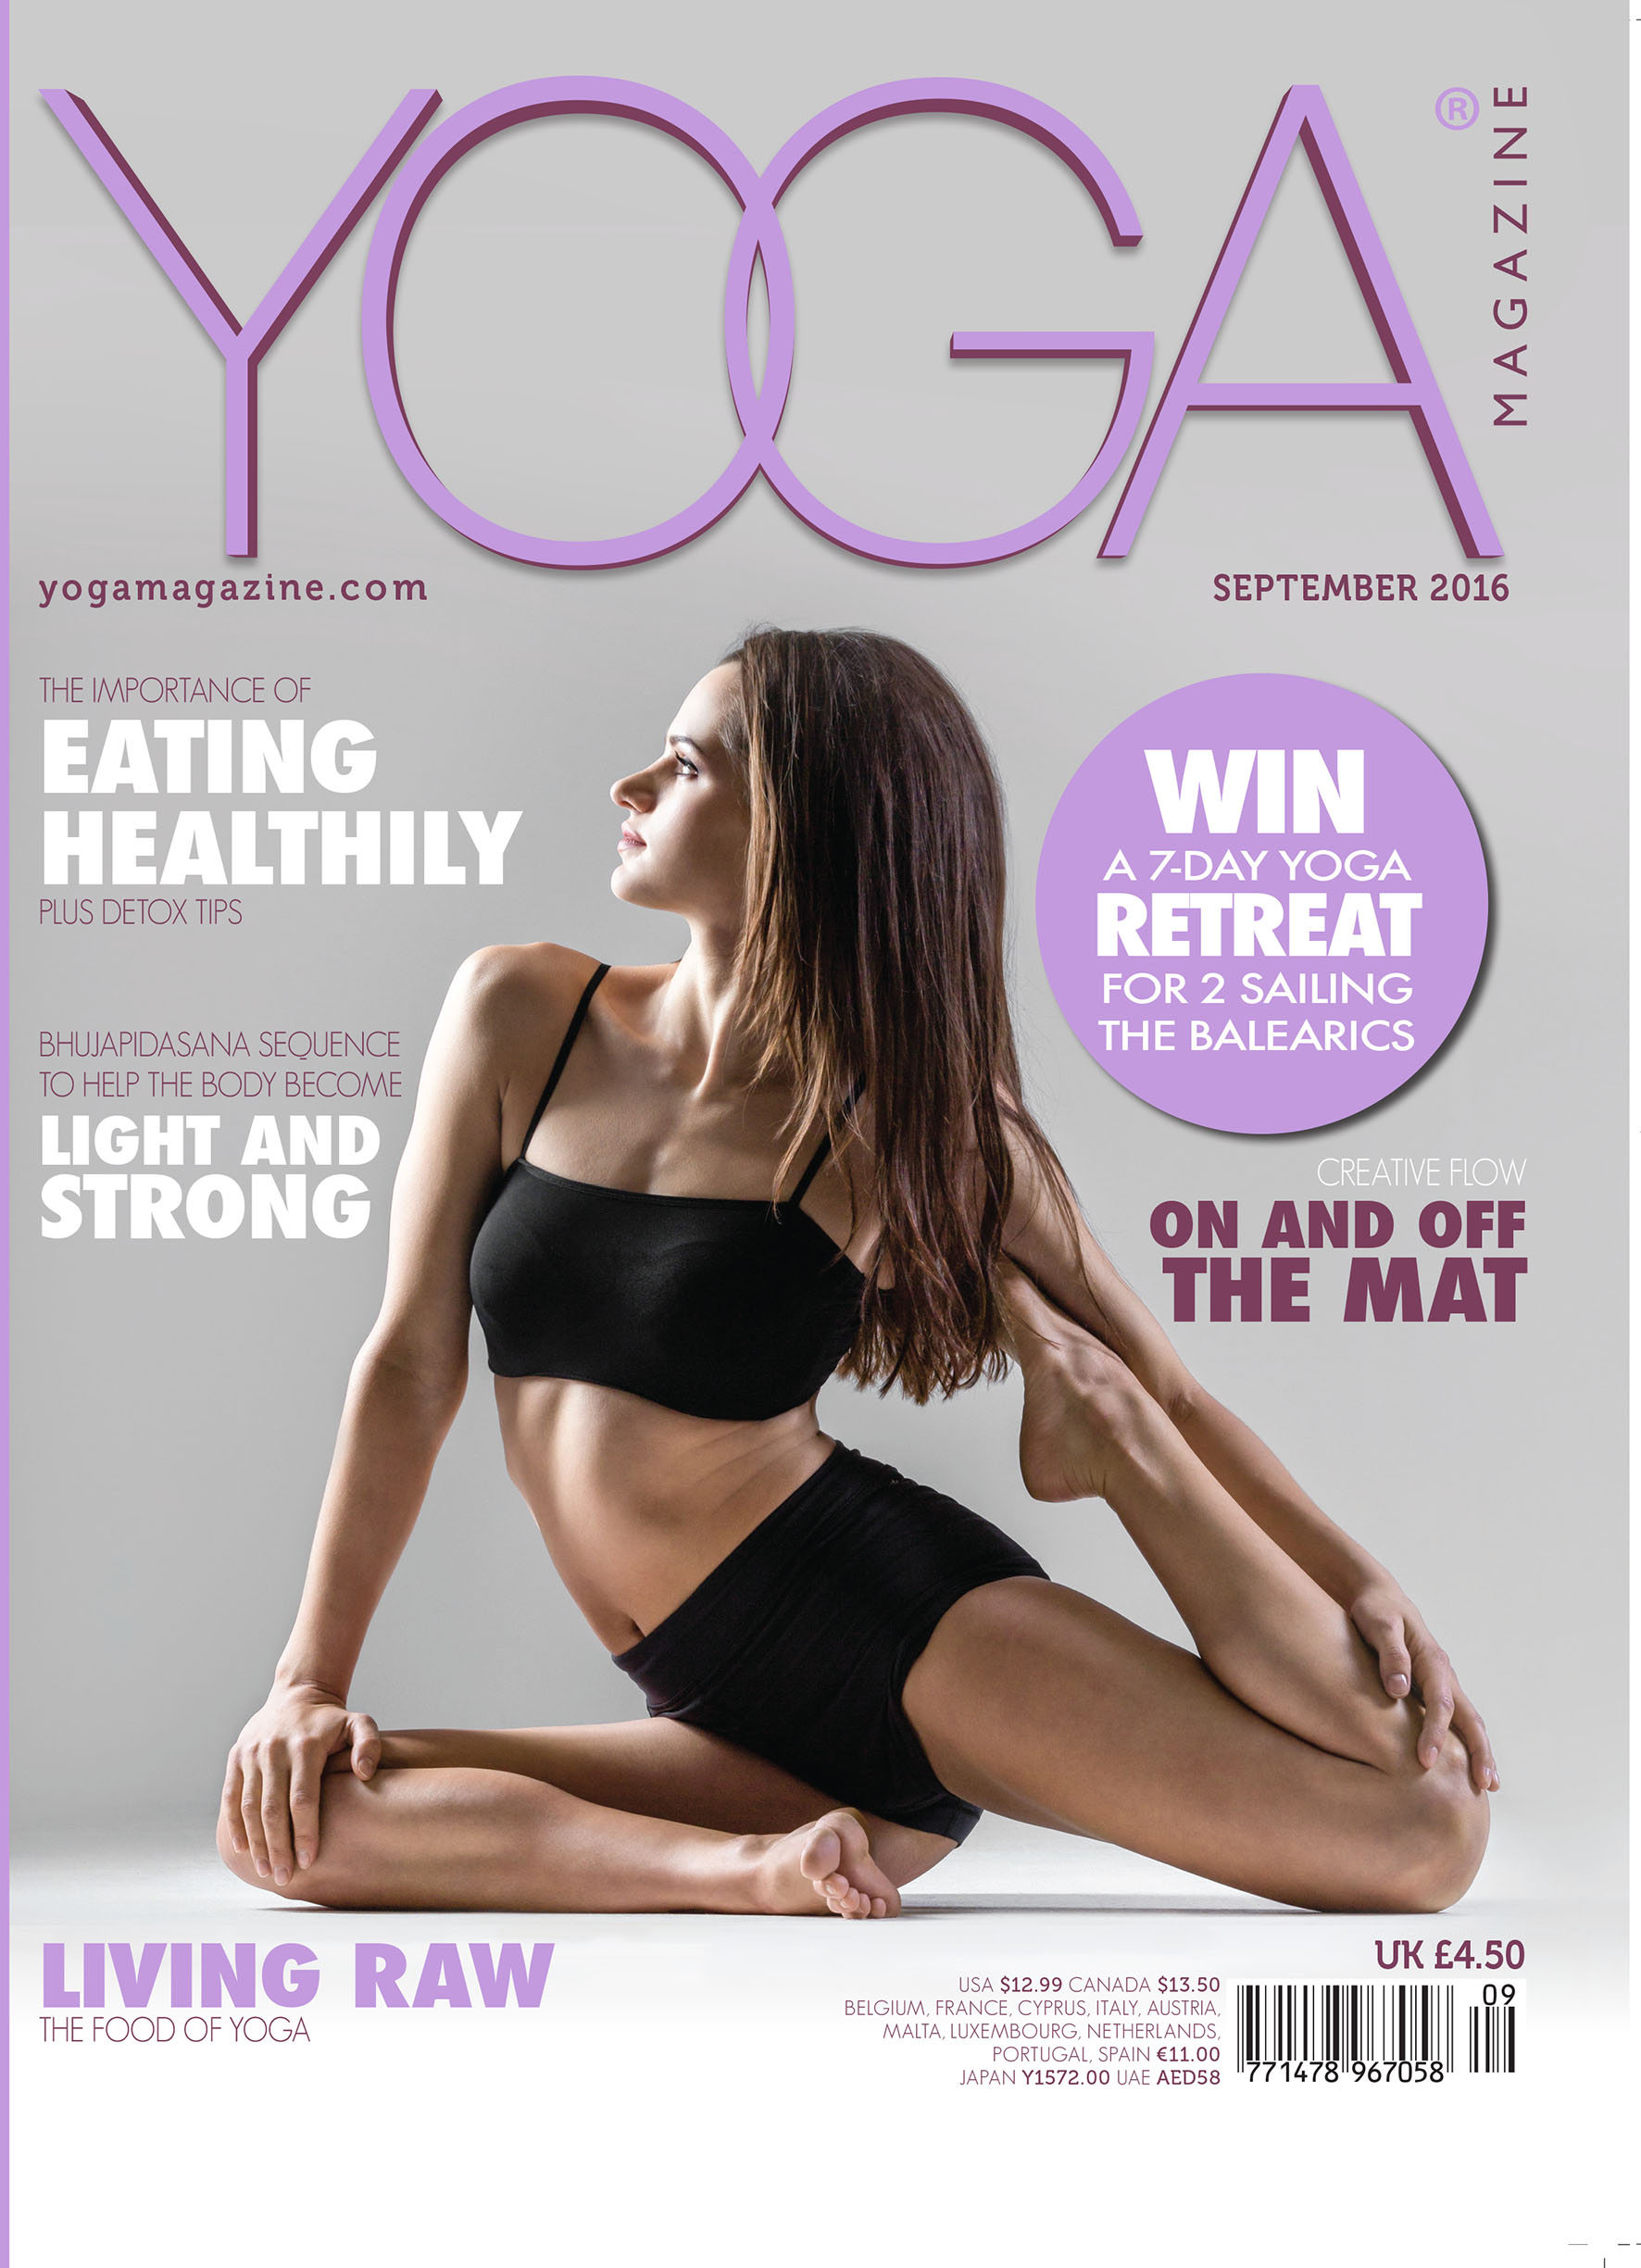 yoga-magazine-sept-2016-uk